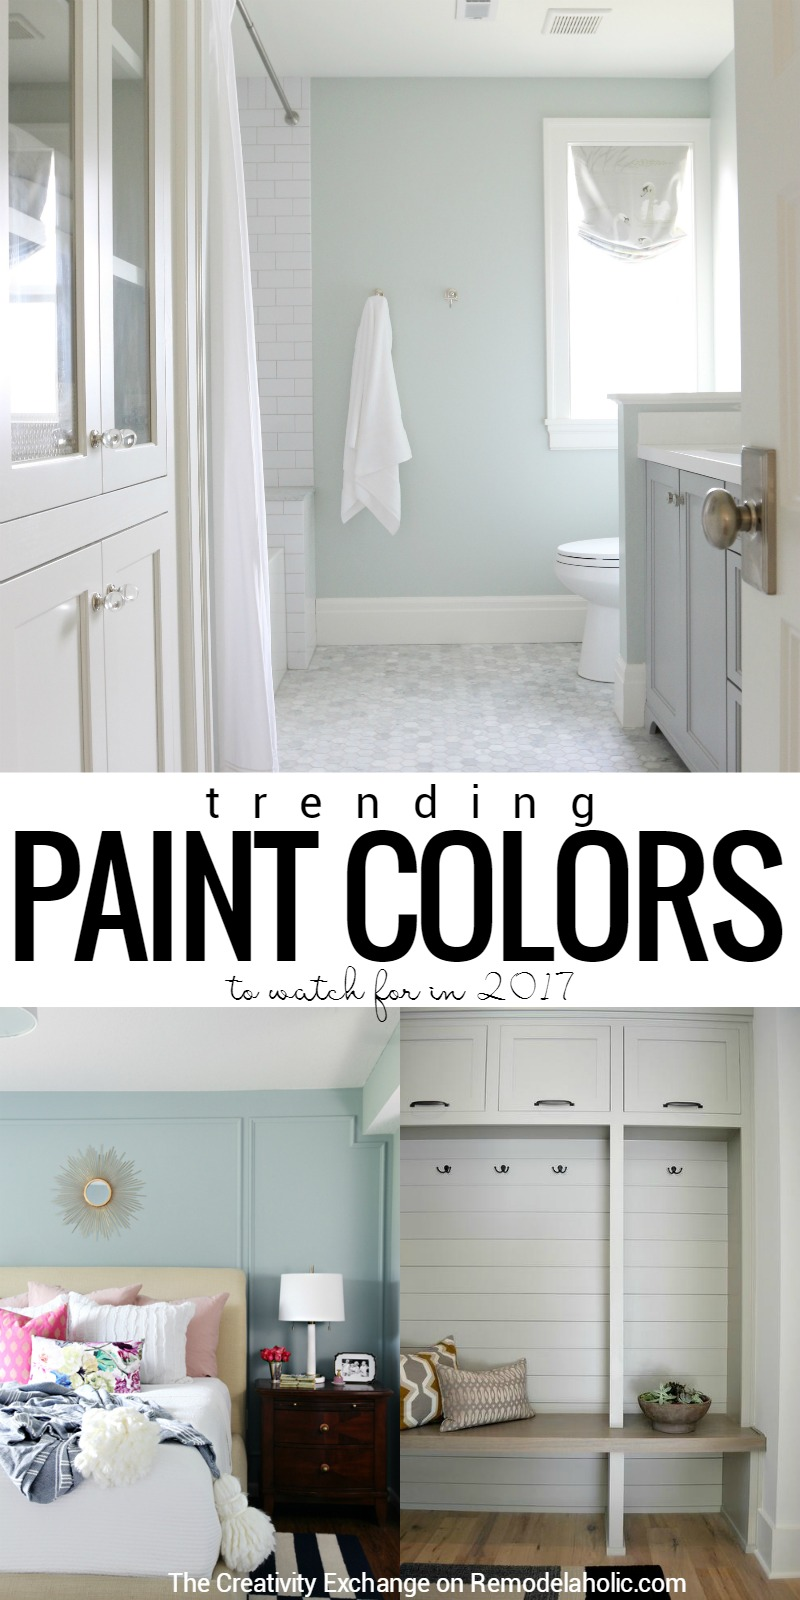 Popular And Trending Paint Colors | Tips For Choosing The Right Paint Color  | Best Interior